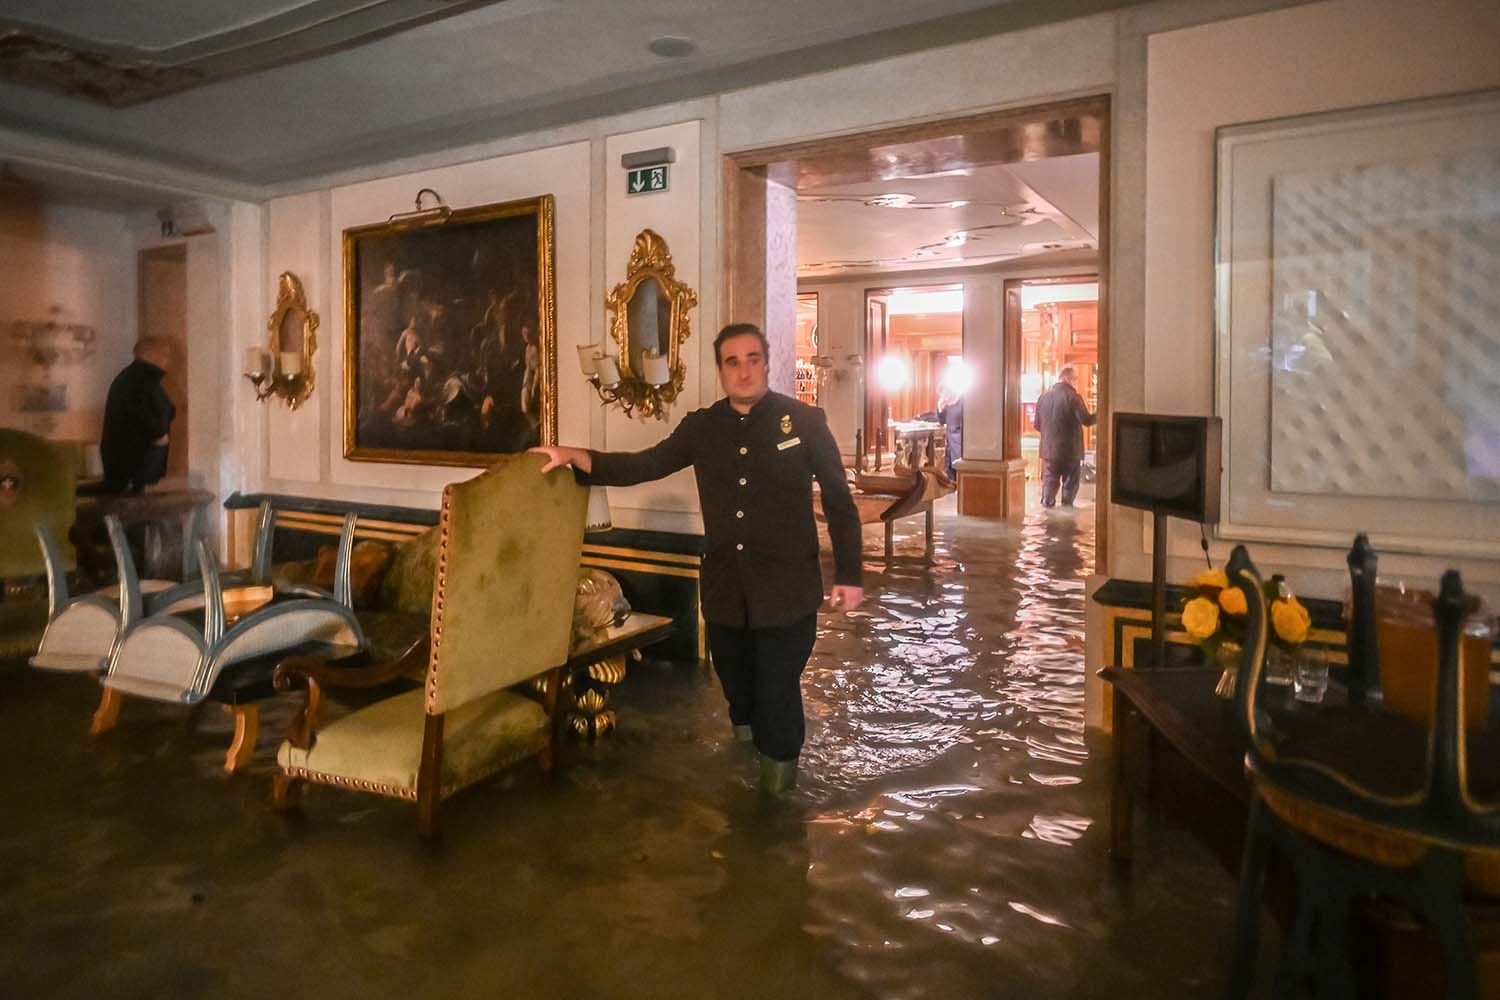 A man wades through a room in the flooded Gritti Palace during an exceptional Alta Acqua high tide in Venice on Nov. 12. MARCO BERTORELLO/AFP via Getty Images